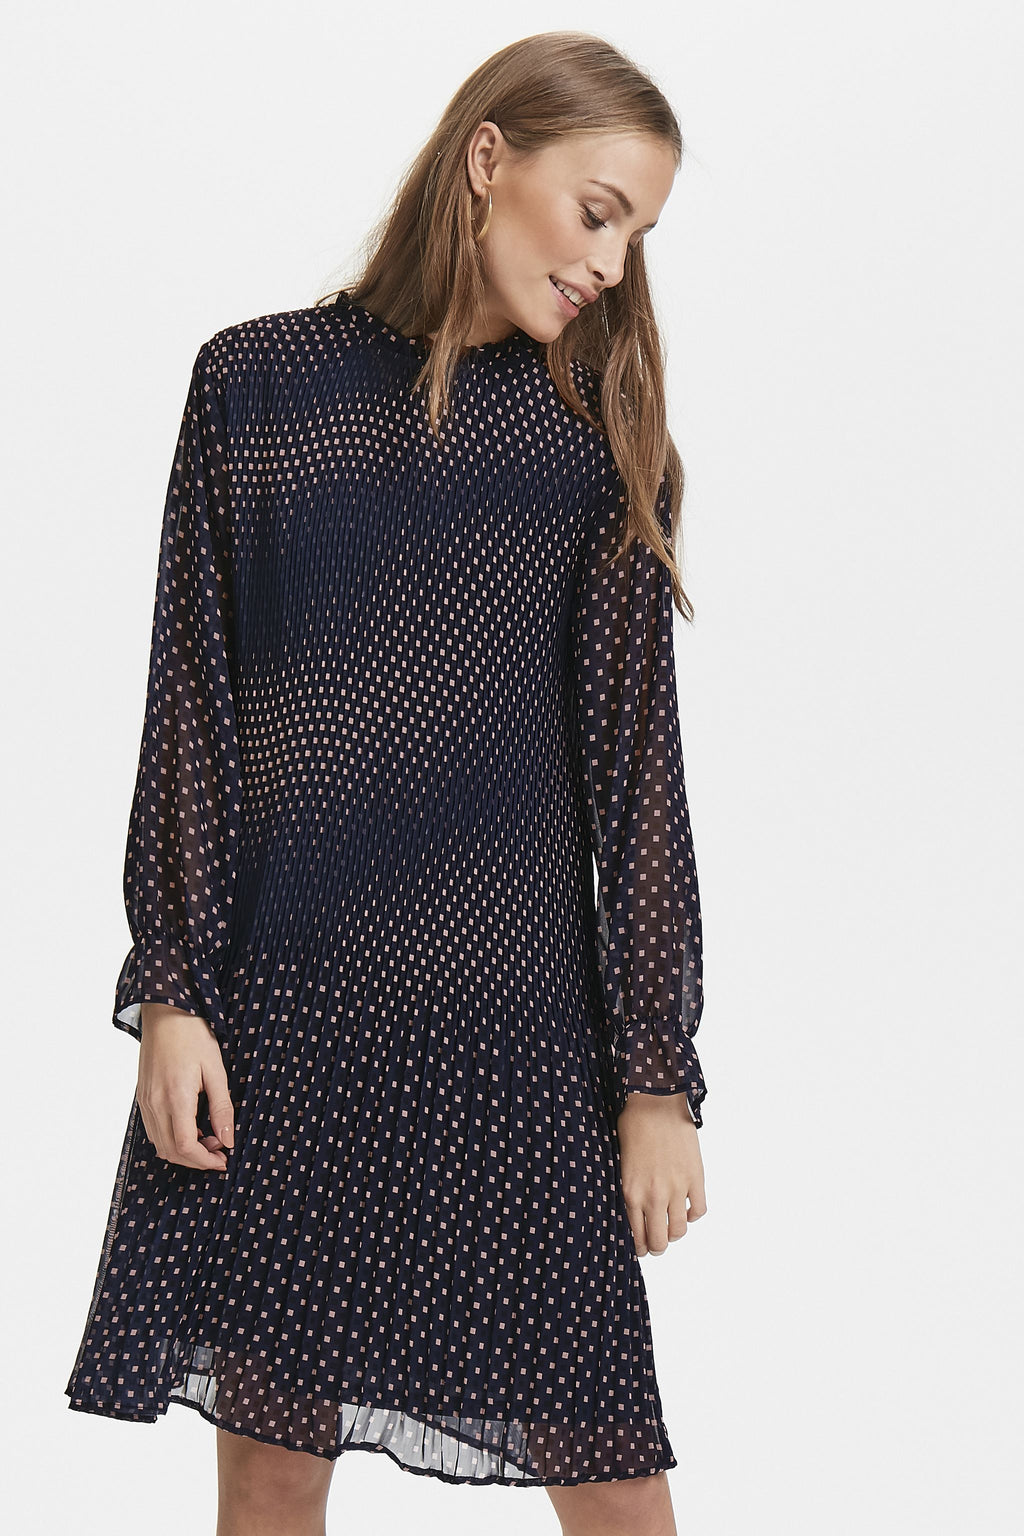 NALLY softly pleated long sheer sleeve dress - total eclipse